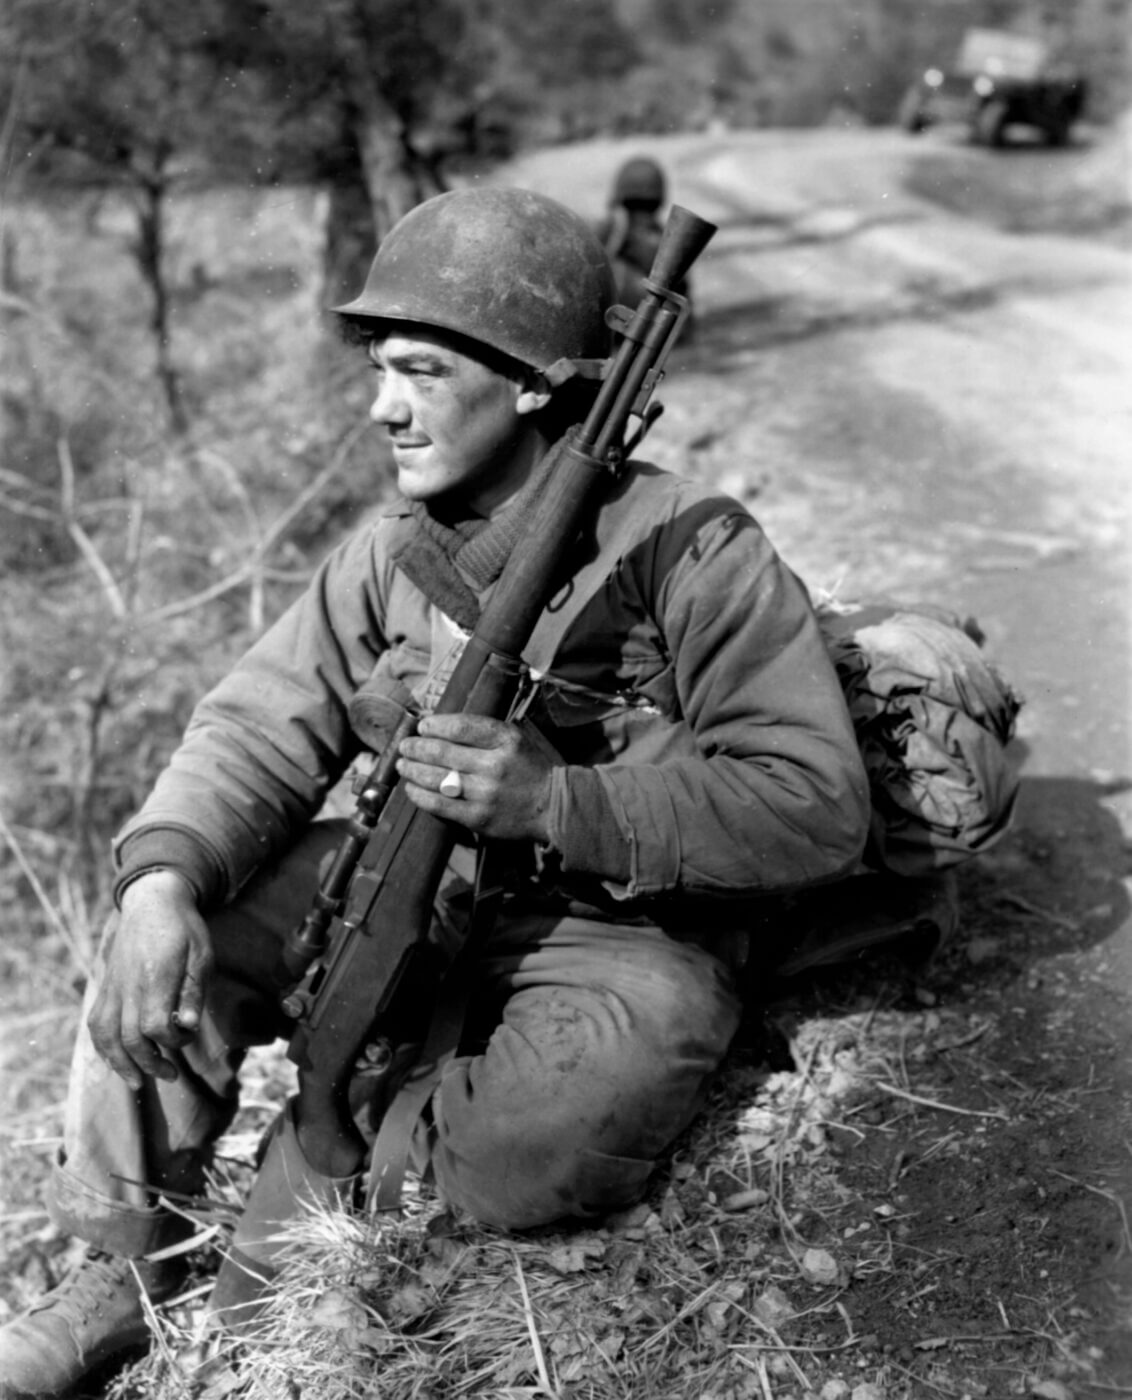 M1C Sniper Rifle in the Korean War held by soldier